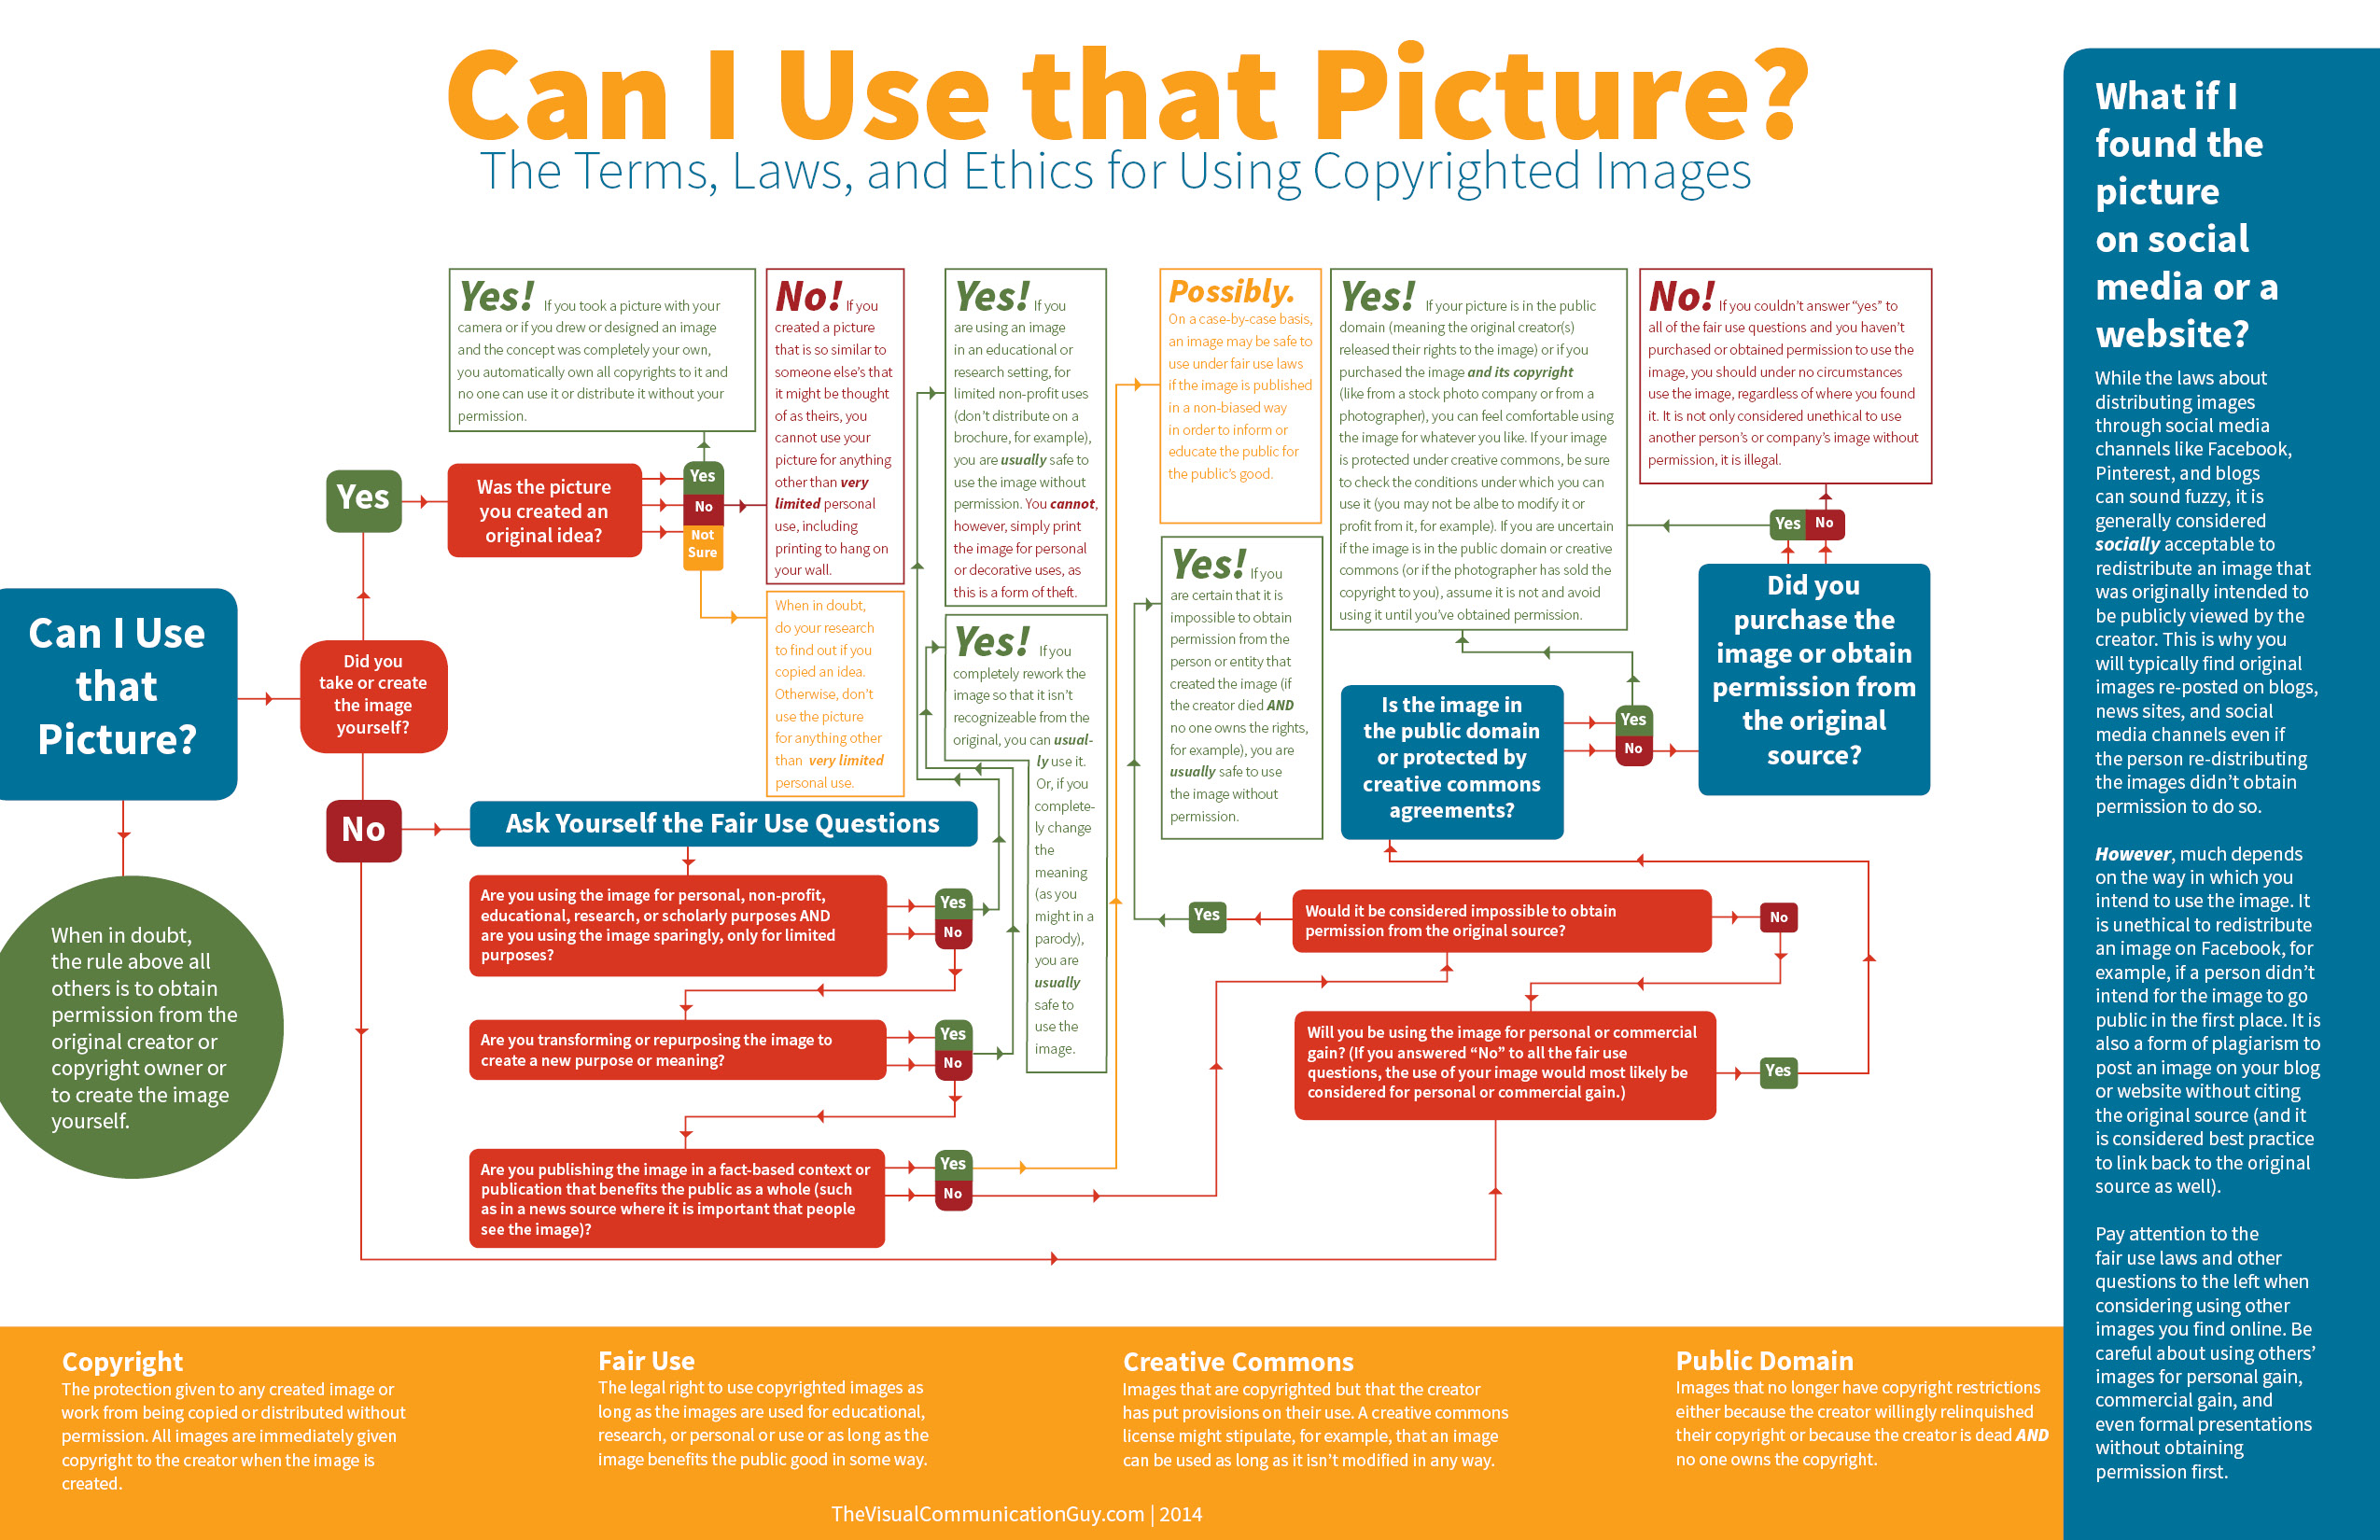 Can I use that picture? (infographic) by Curtis Newbold, The Visual Communication Guy